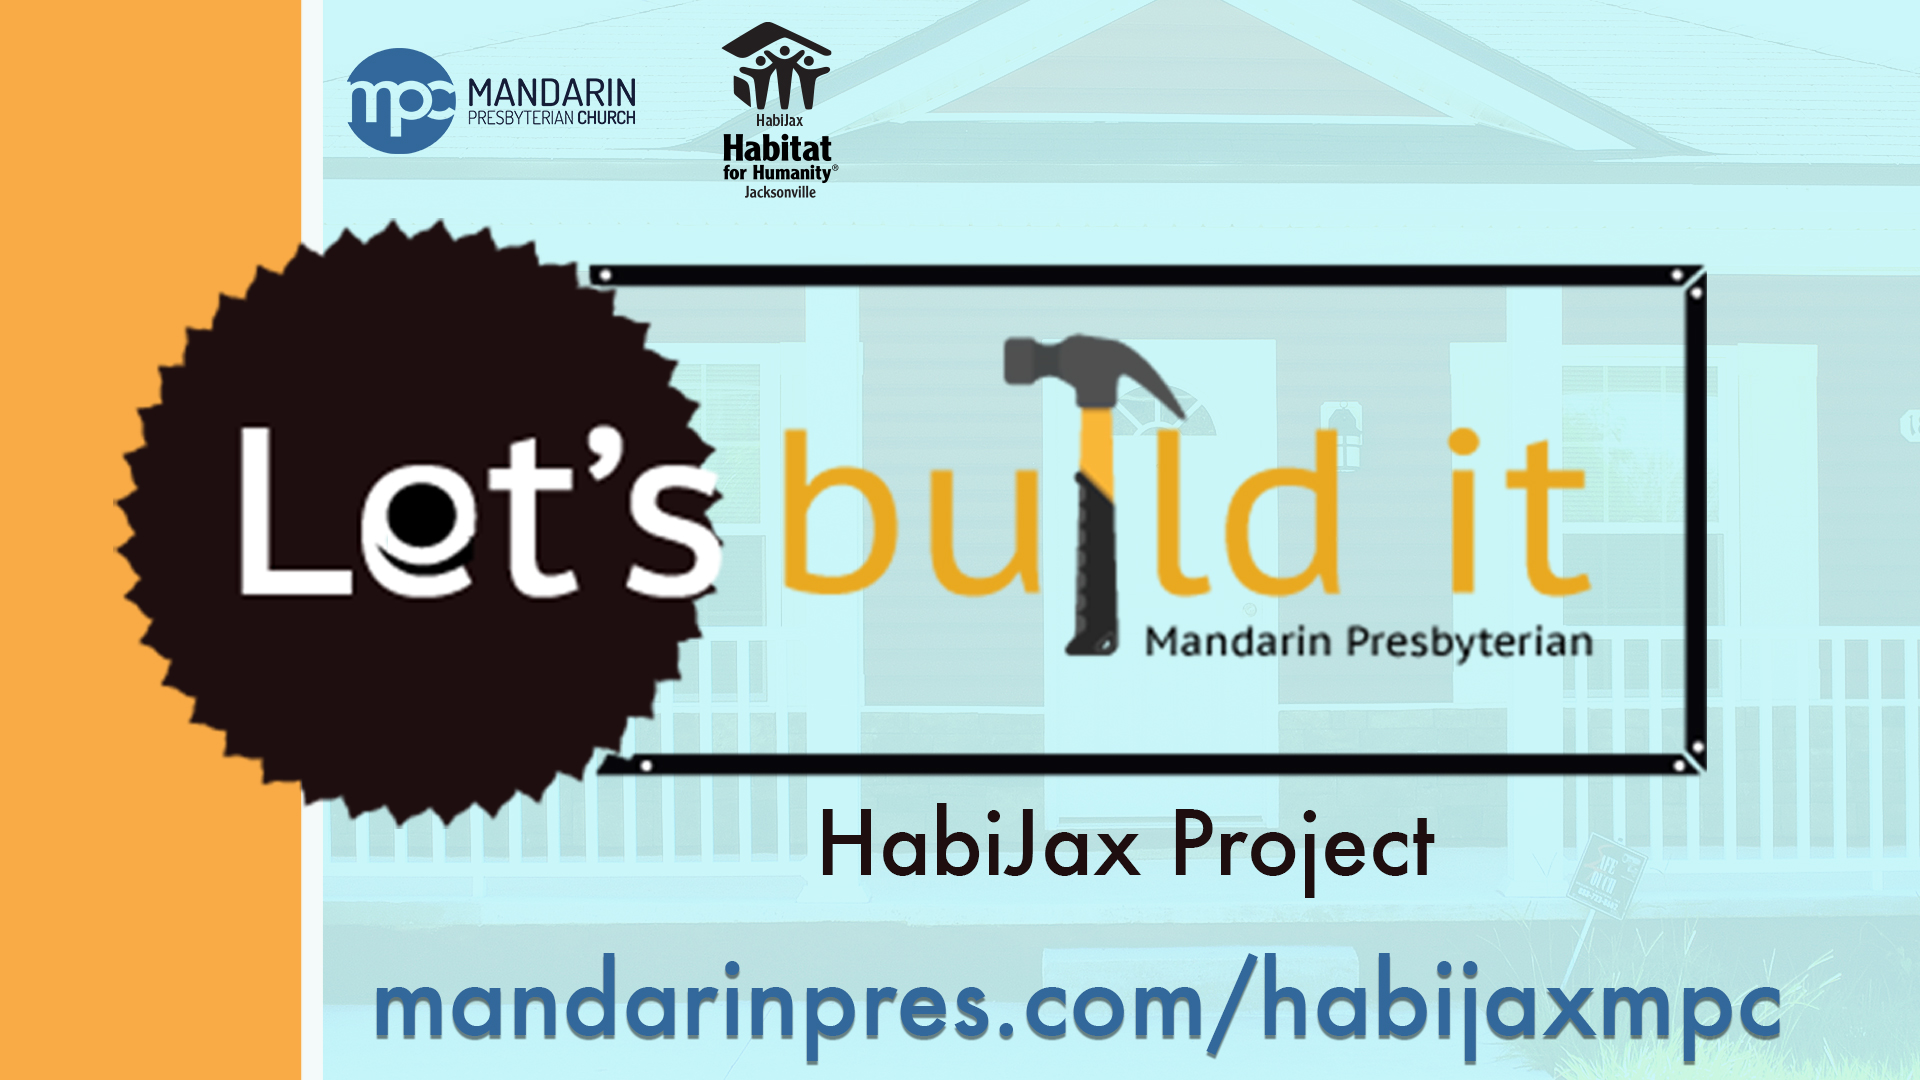 Let's Build It! Campaign